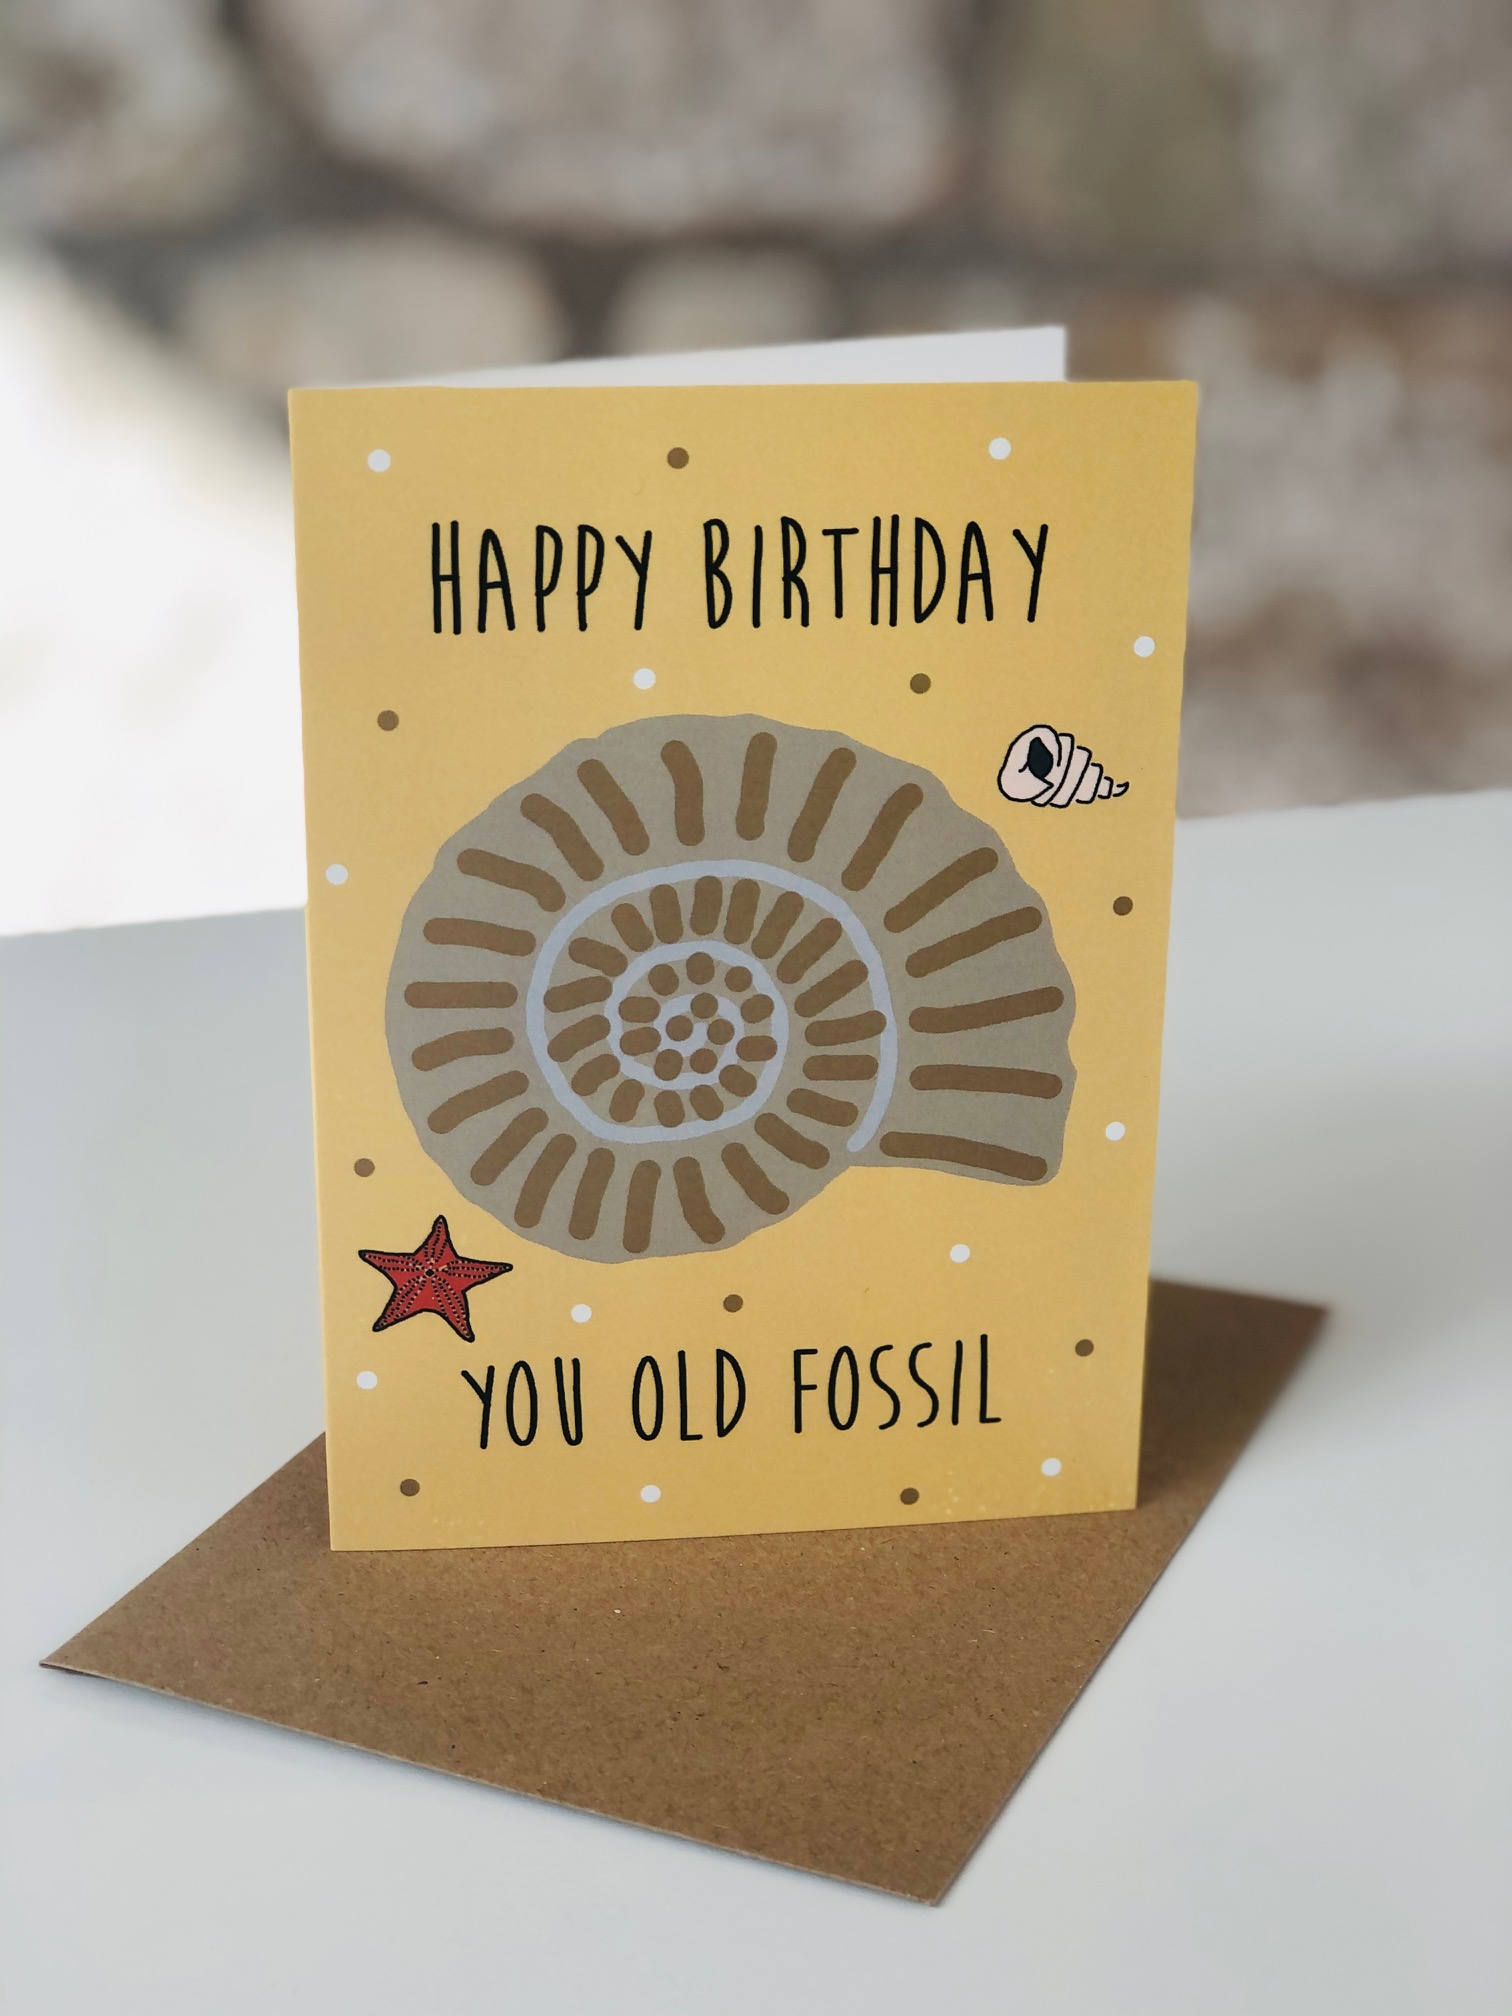 'Old Fossil' Greetings Card by Emma